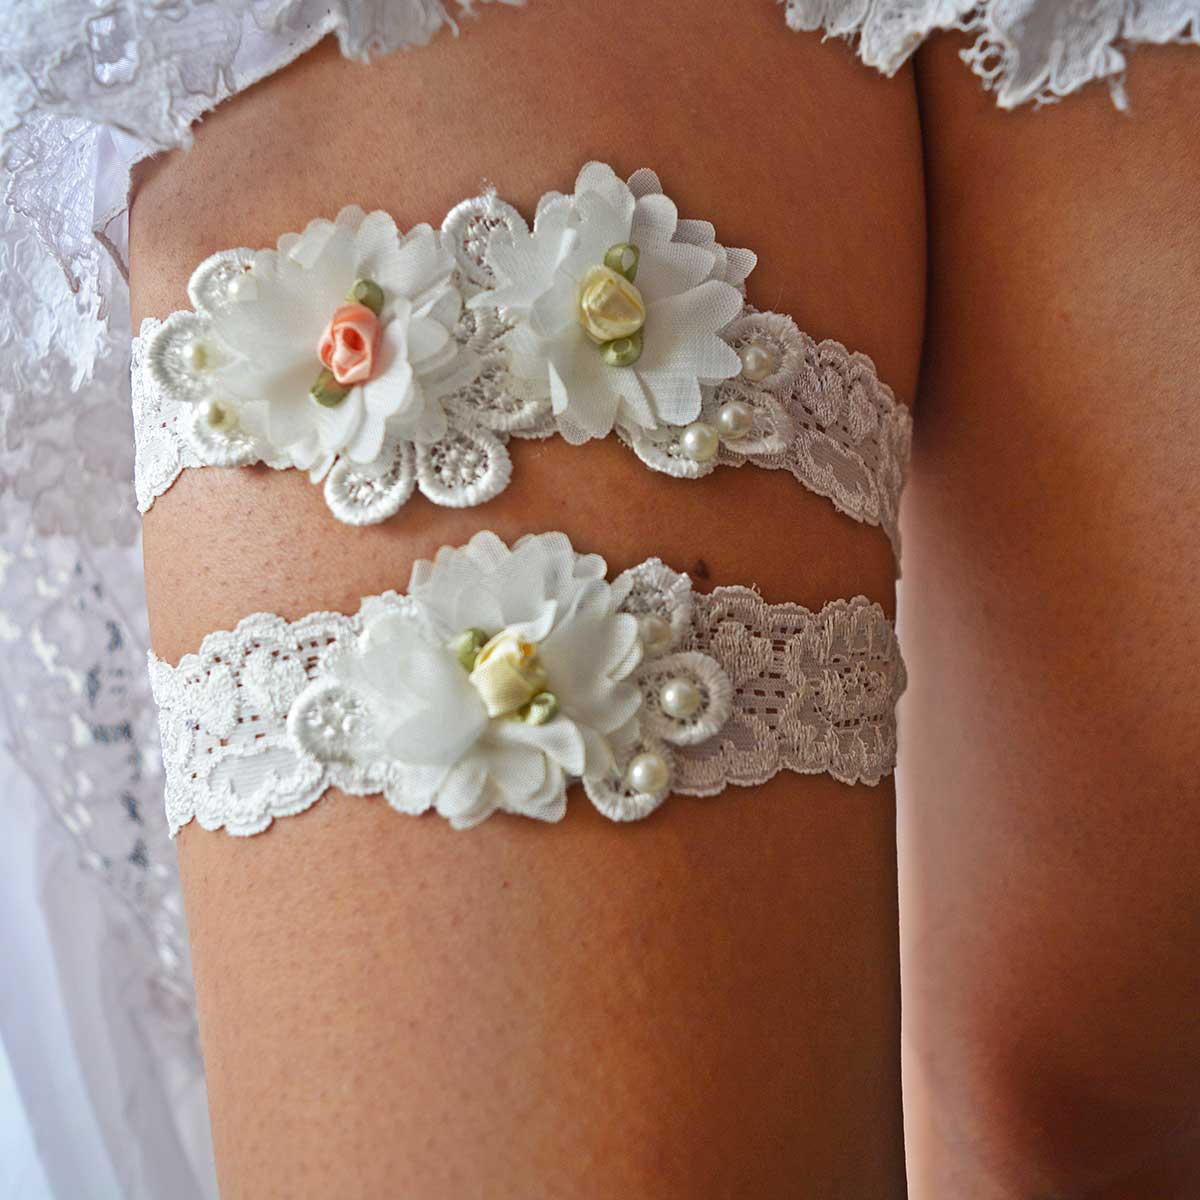 Off White Bridal Garter With Flowers & Pearls Handmade - Wedding Garter - SuzannaM Designs